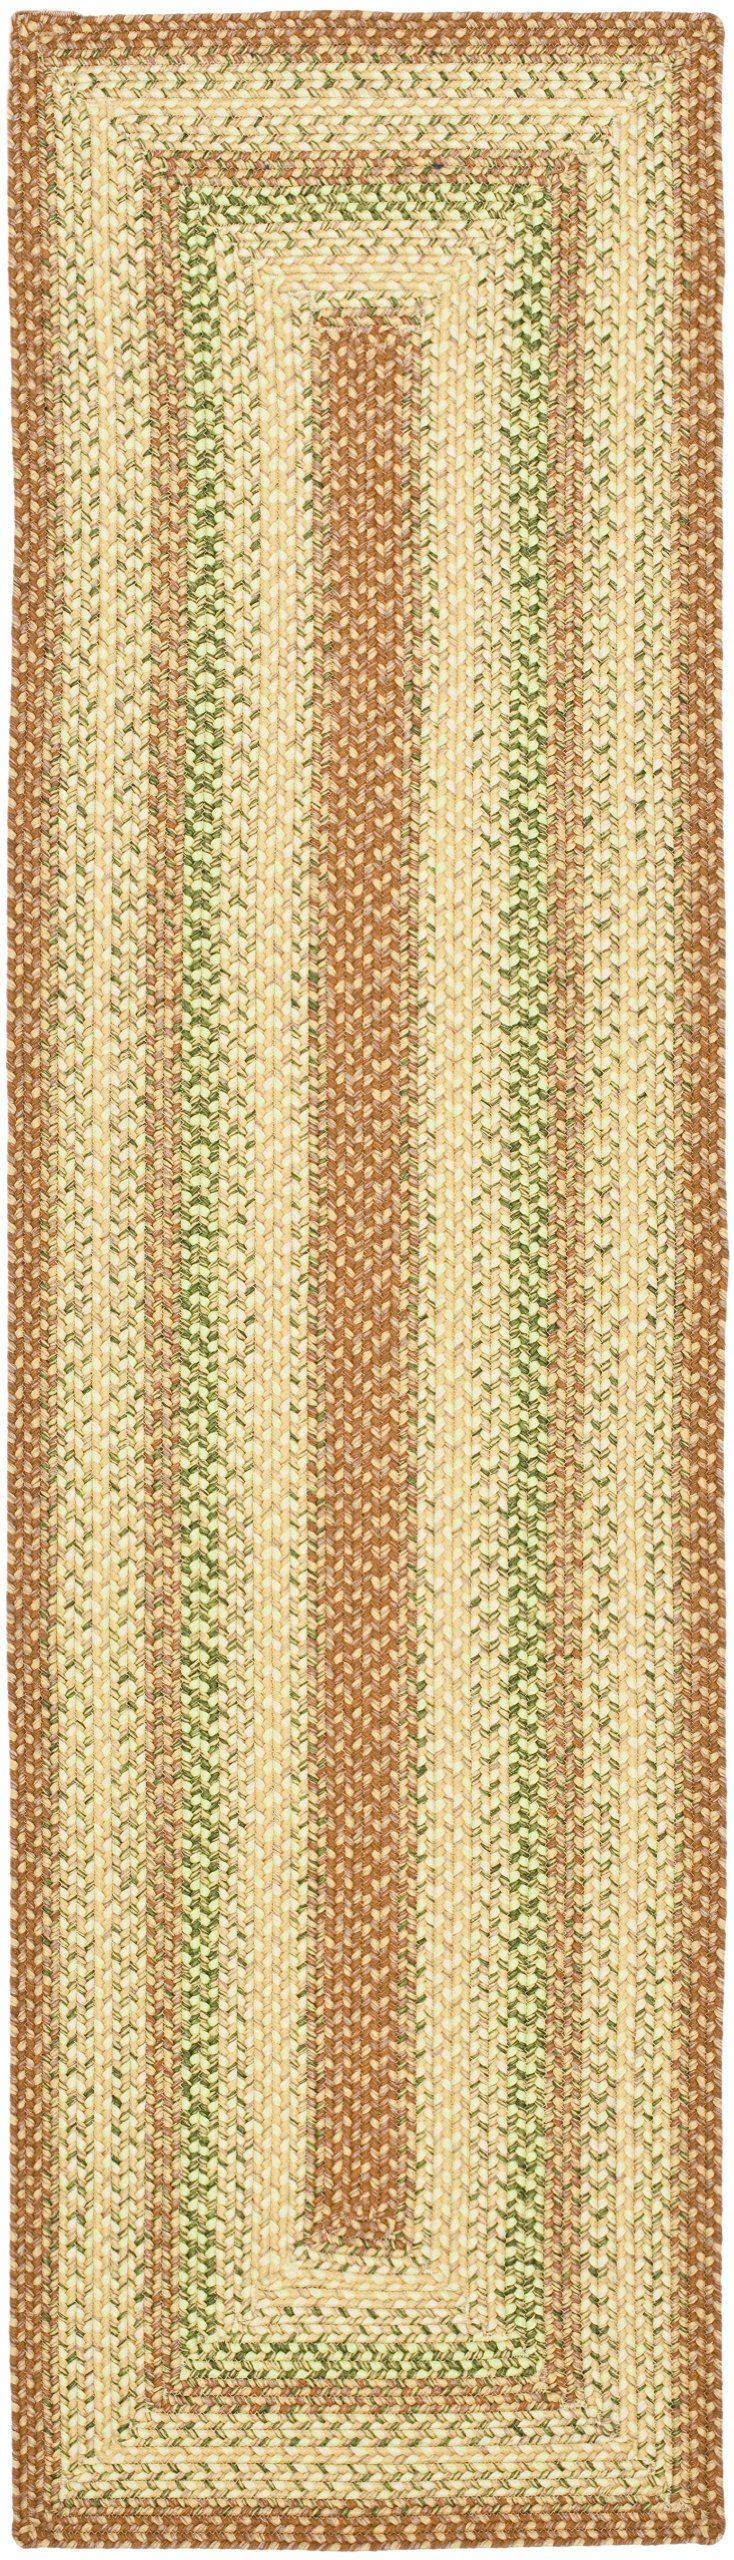 Amazon.com   Safavieh Braided Collection BRD303A Handmade Reversible Area  Runner, 2 Feet